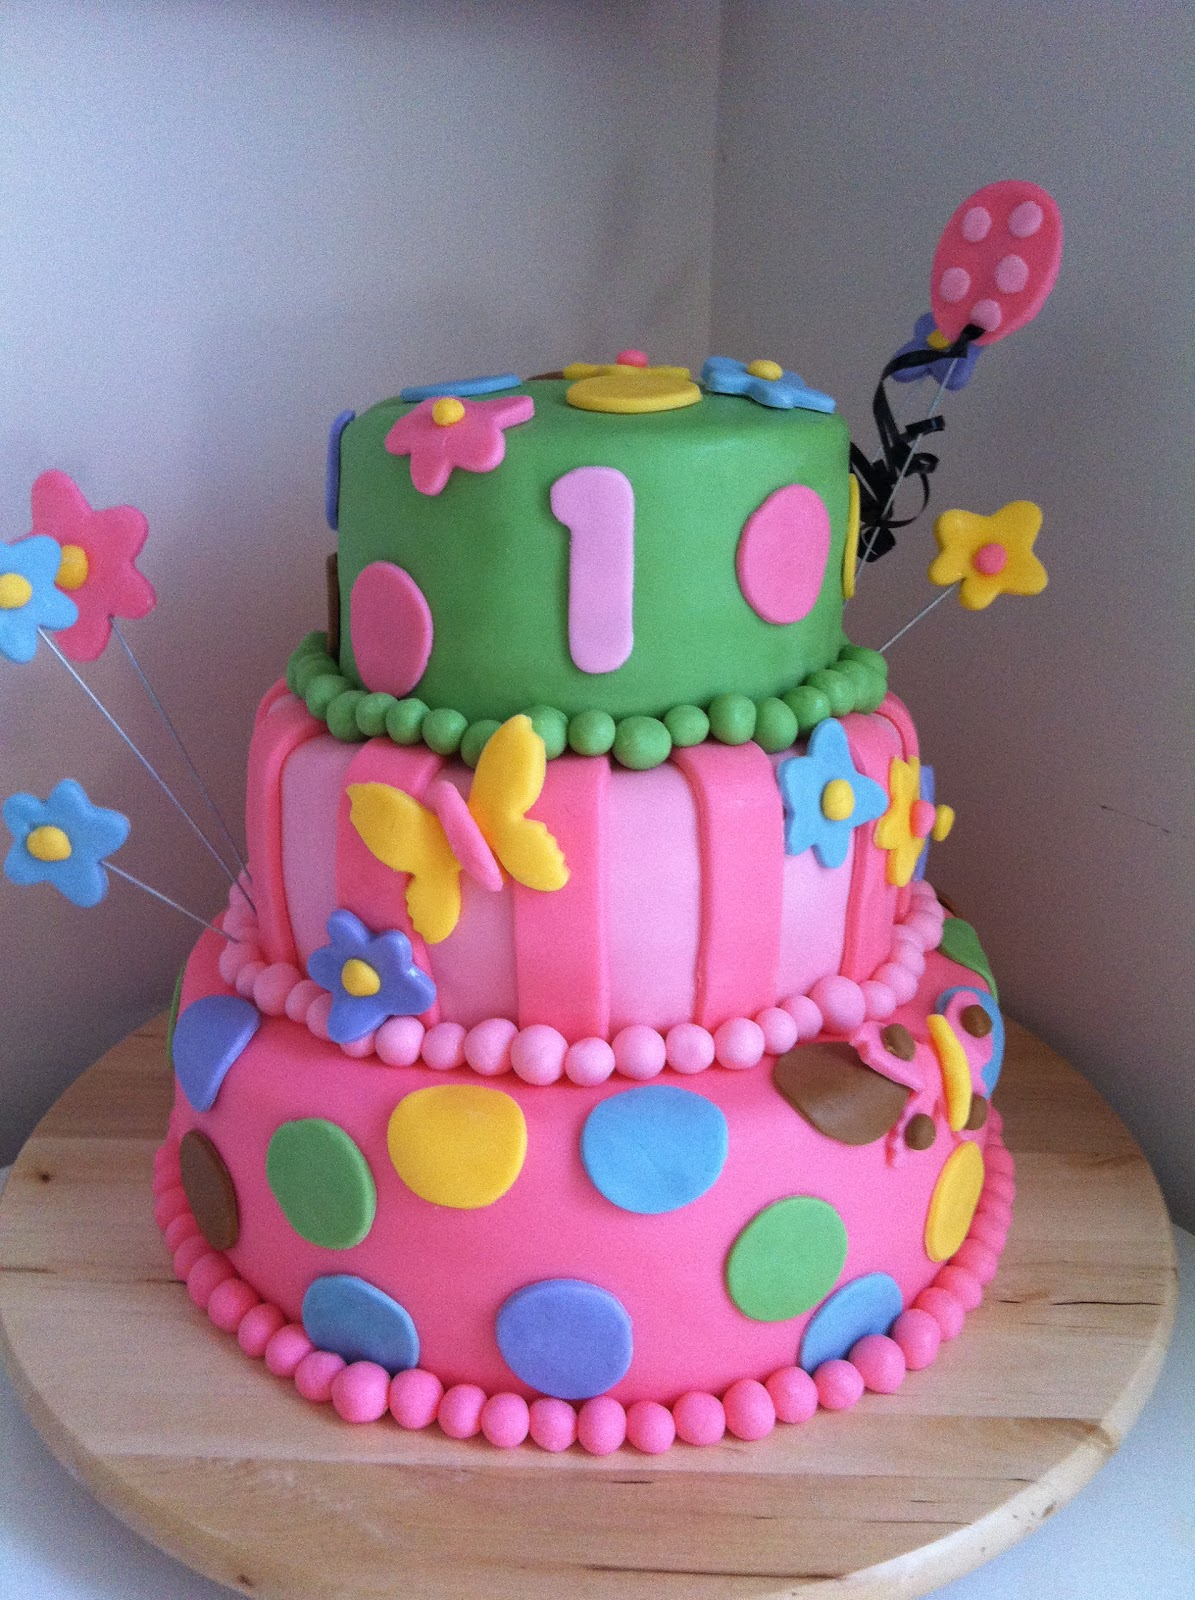 Cake Ideas For First Birthday Girl : Sweetness by D.: 1st Birthday Cakes for girls